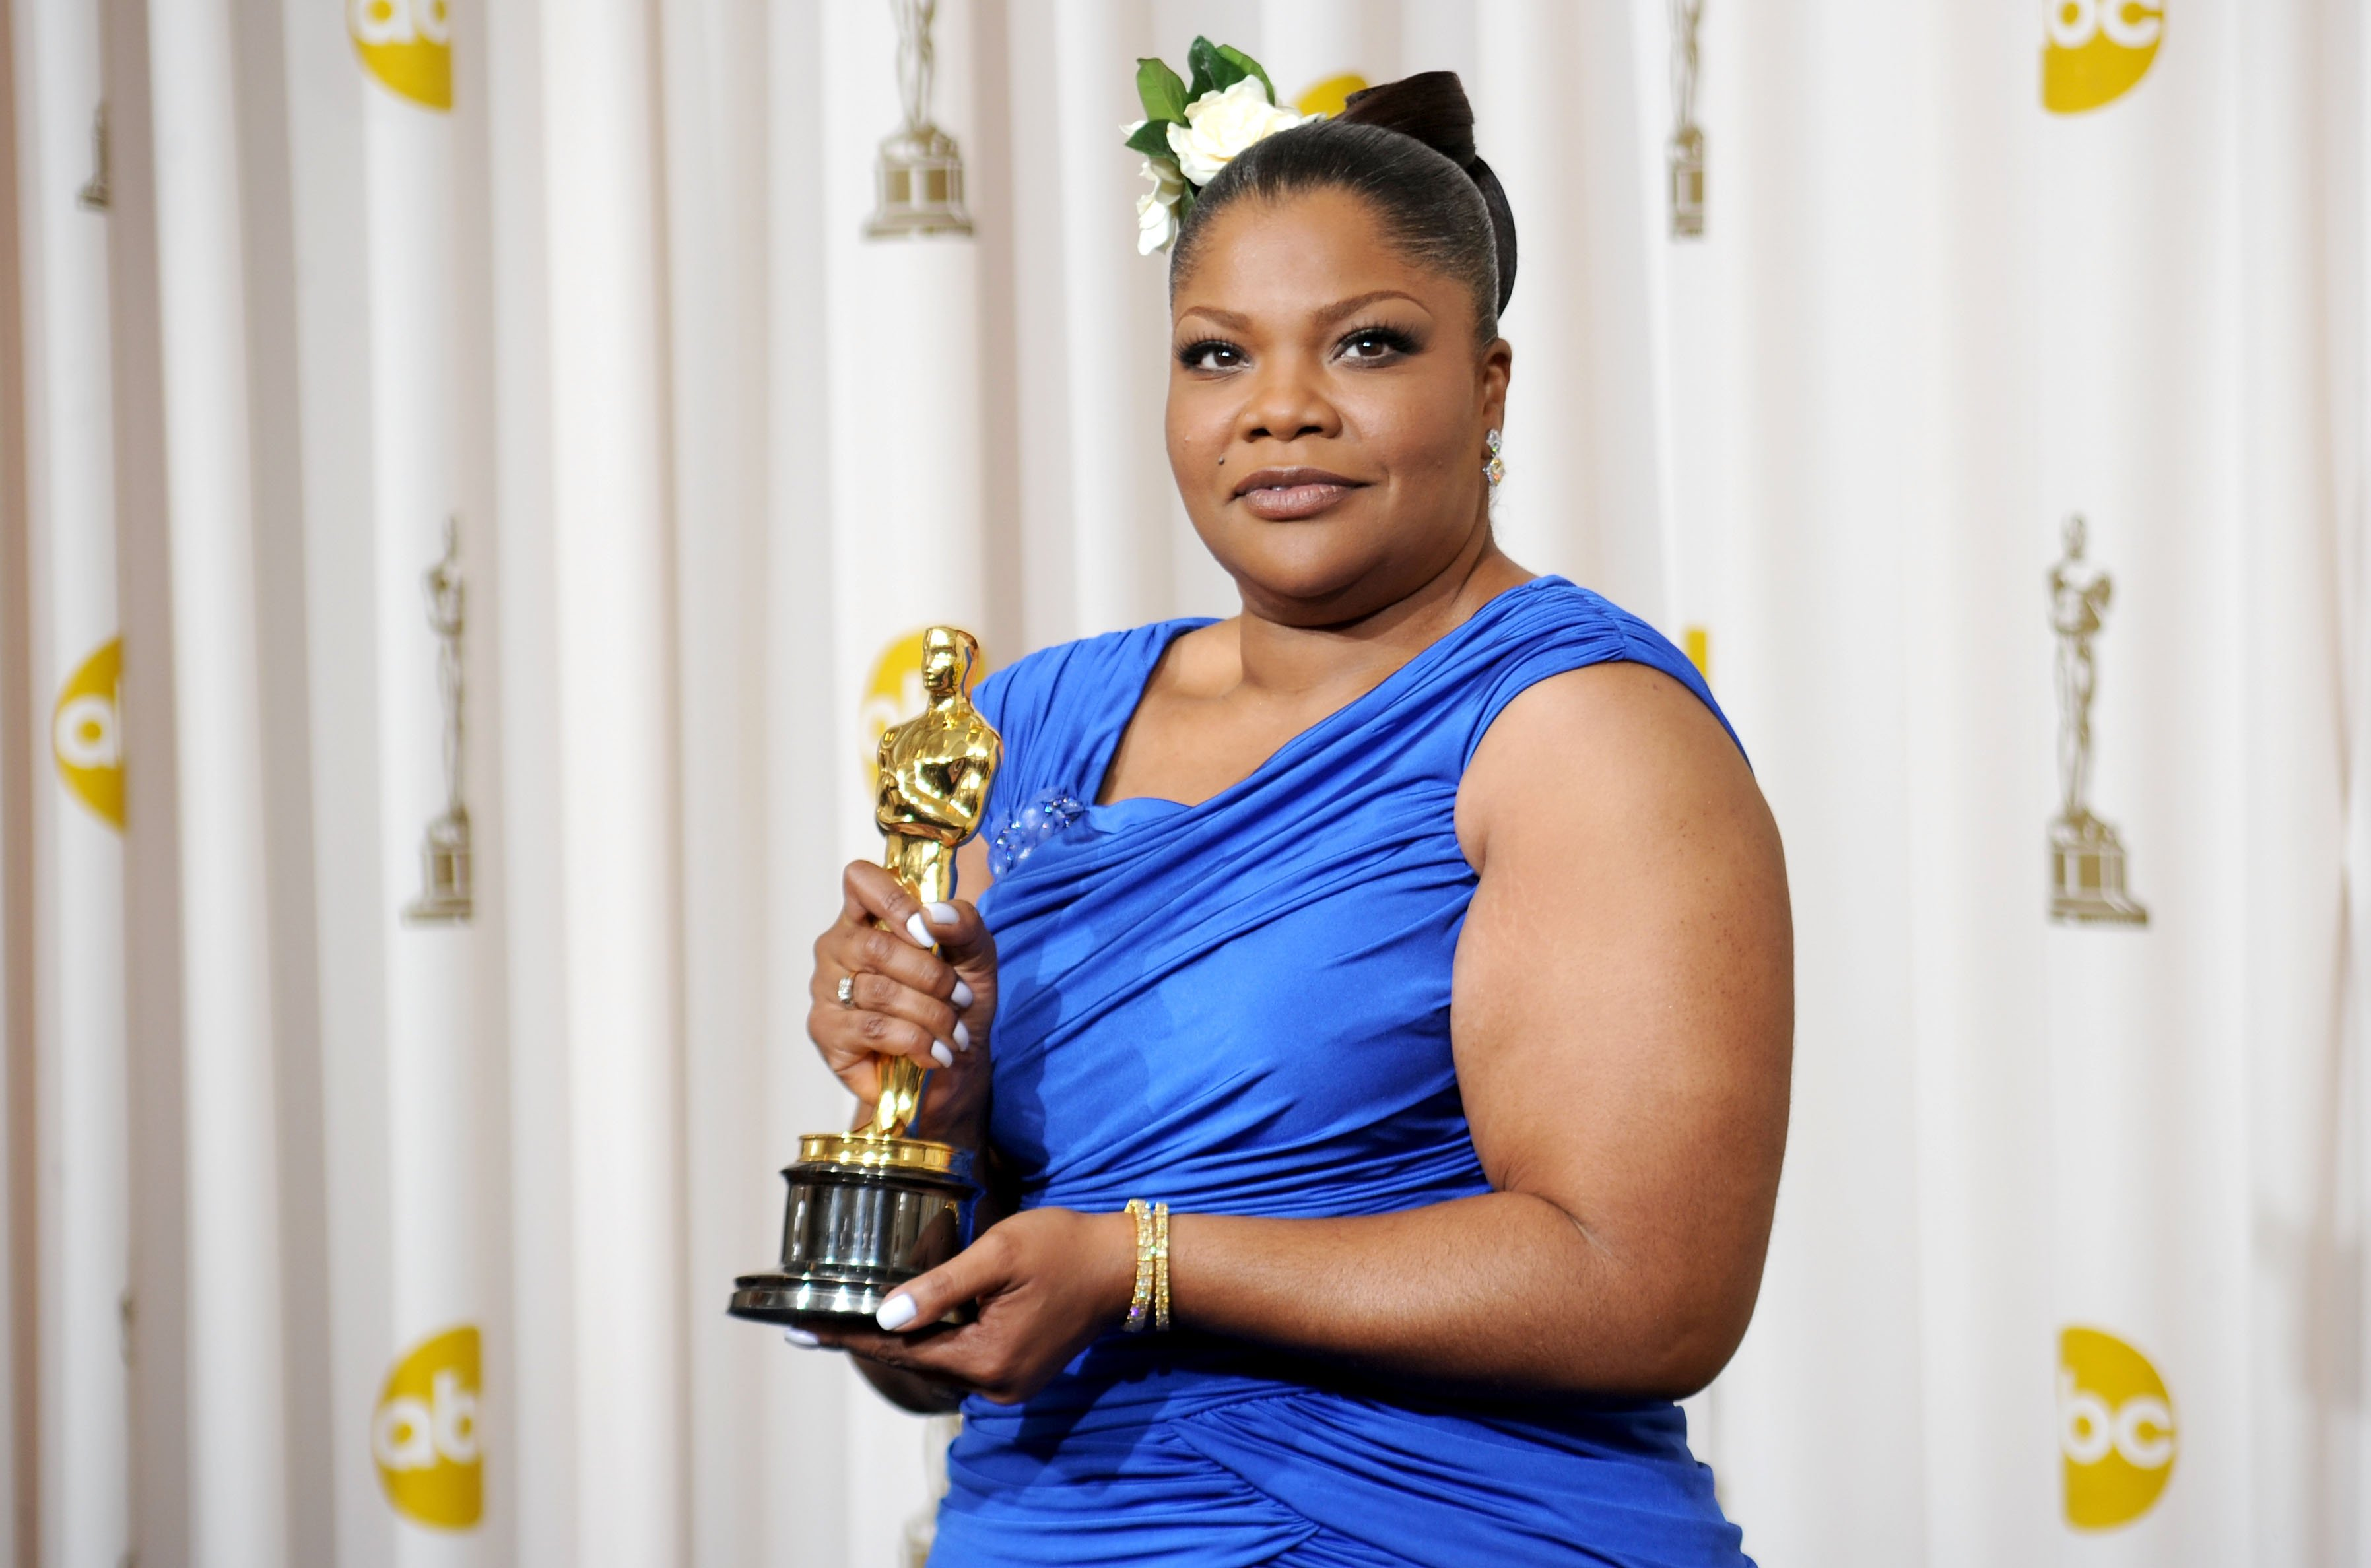 Image Credits: Getty Images | Mo'Nique posing with her Oscar